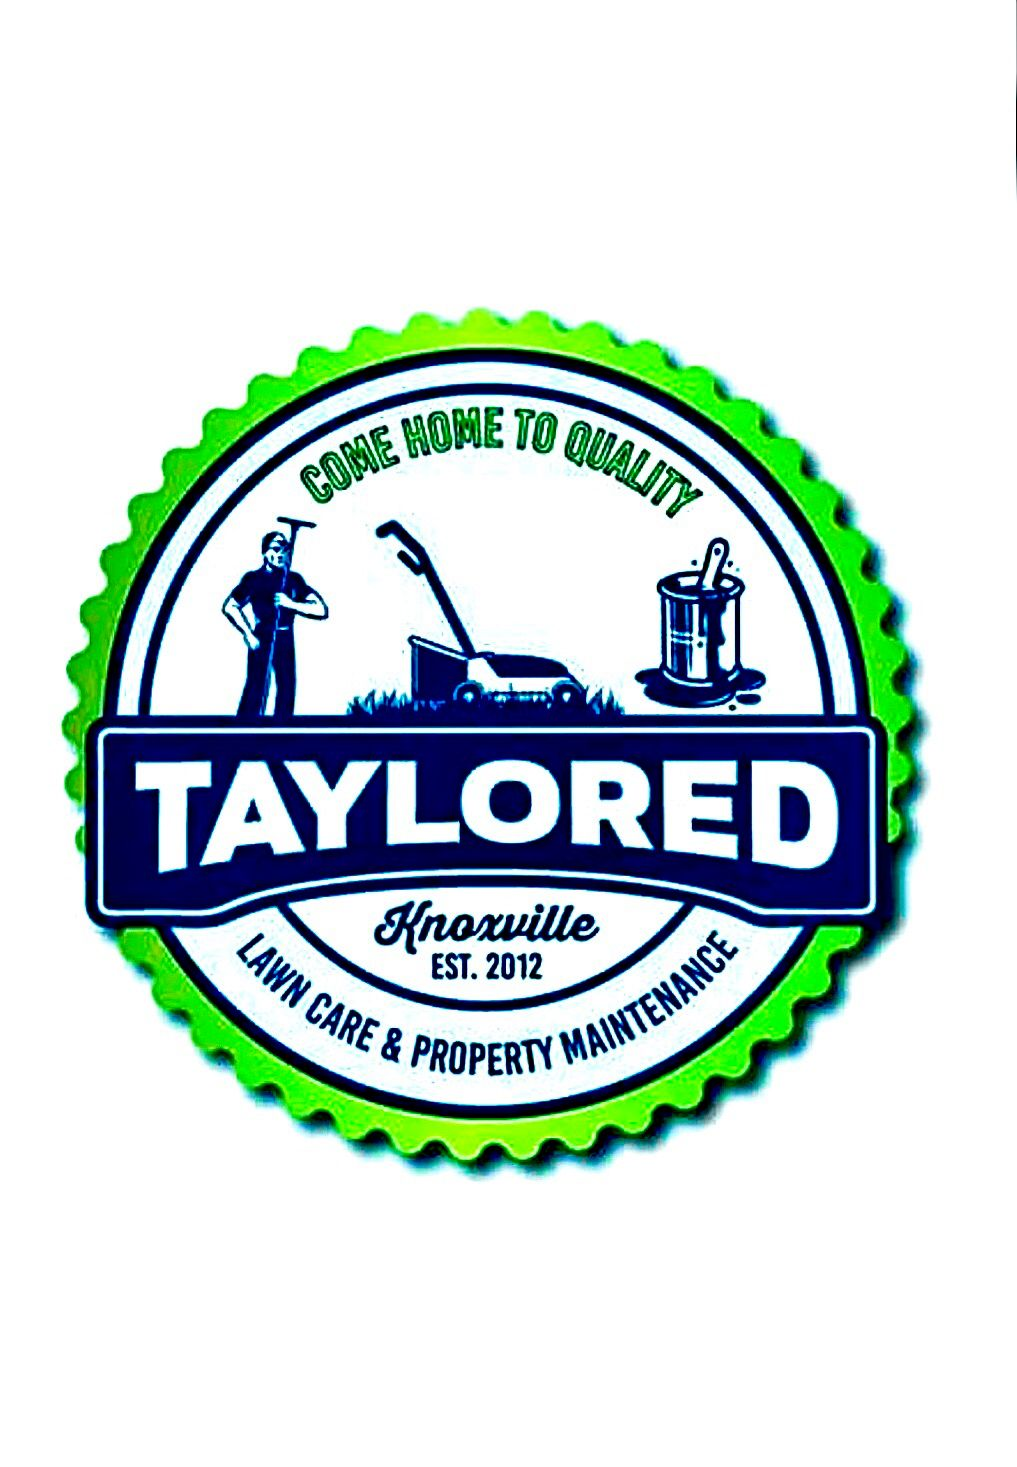 Taylored Lawn Care/Property Maintenance and MORE